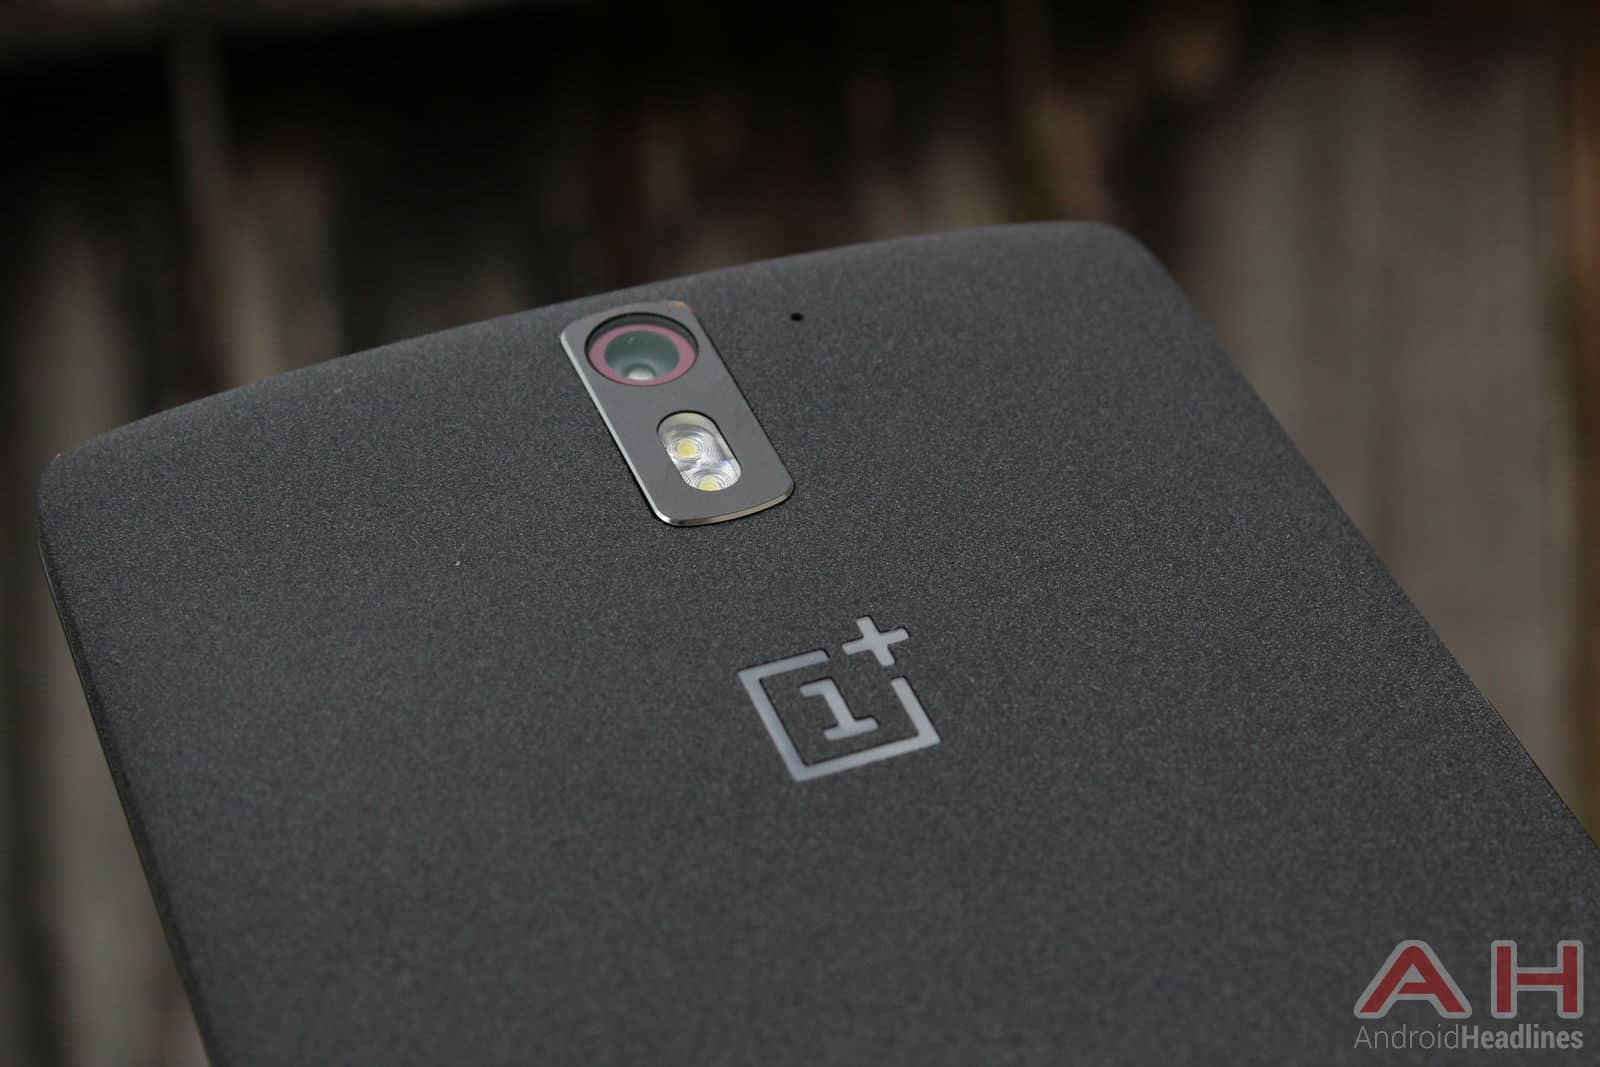 Top 5 Roms for the OnePlus One